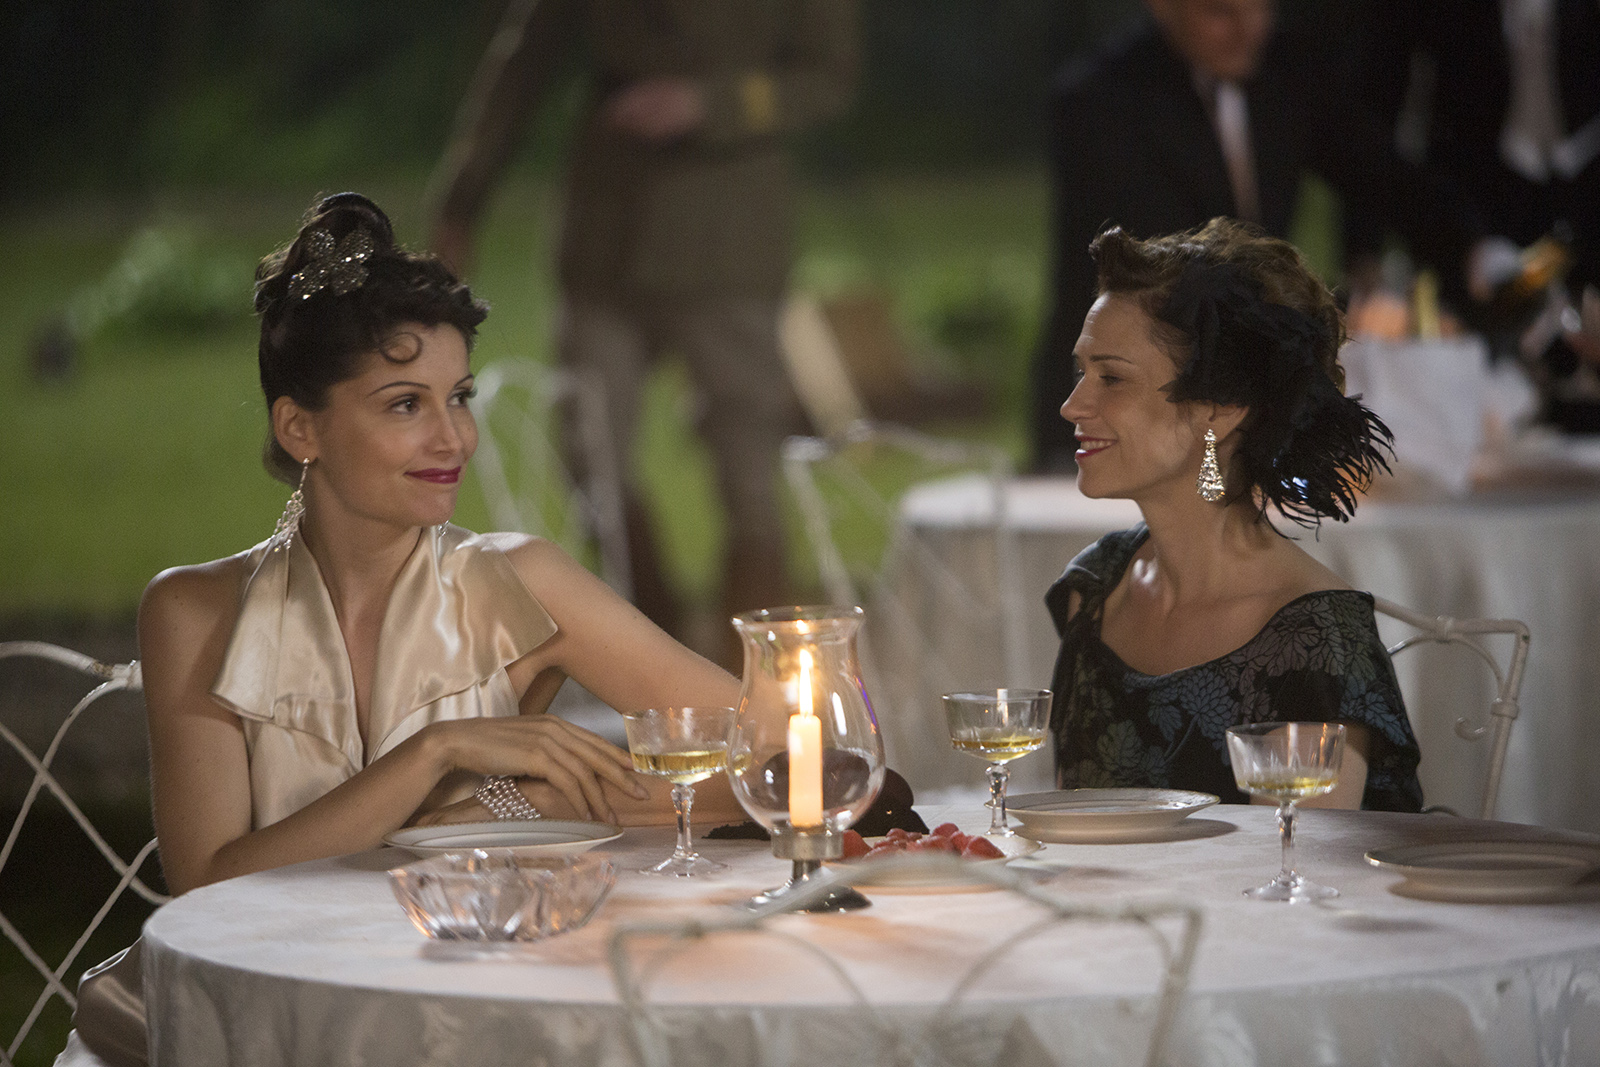 Laetitia Casta and Marie-Josée Croze in Arletty, une passion coupable (2015)